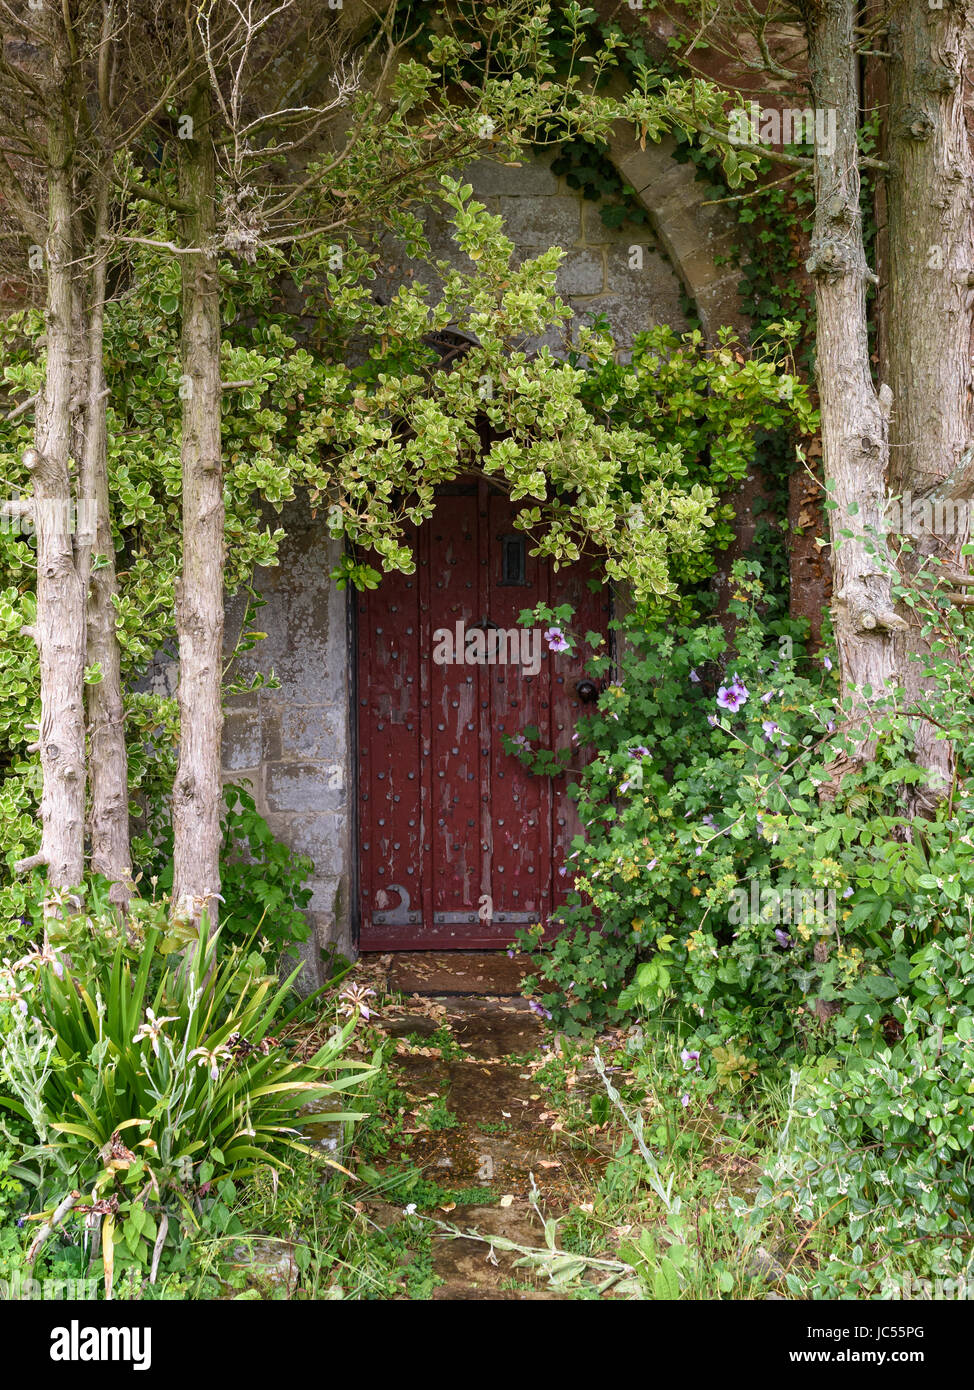 Mysterious arched door with Overgrown plants, Isle of Wight, UK Stock Photo